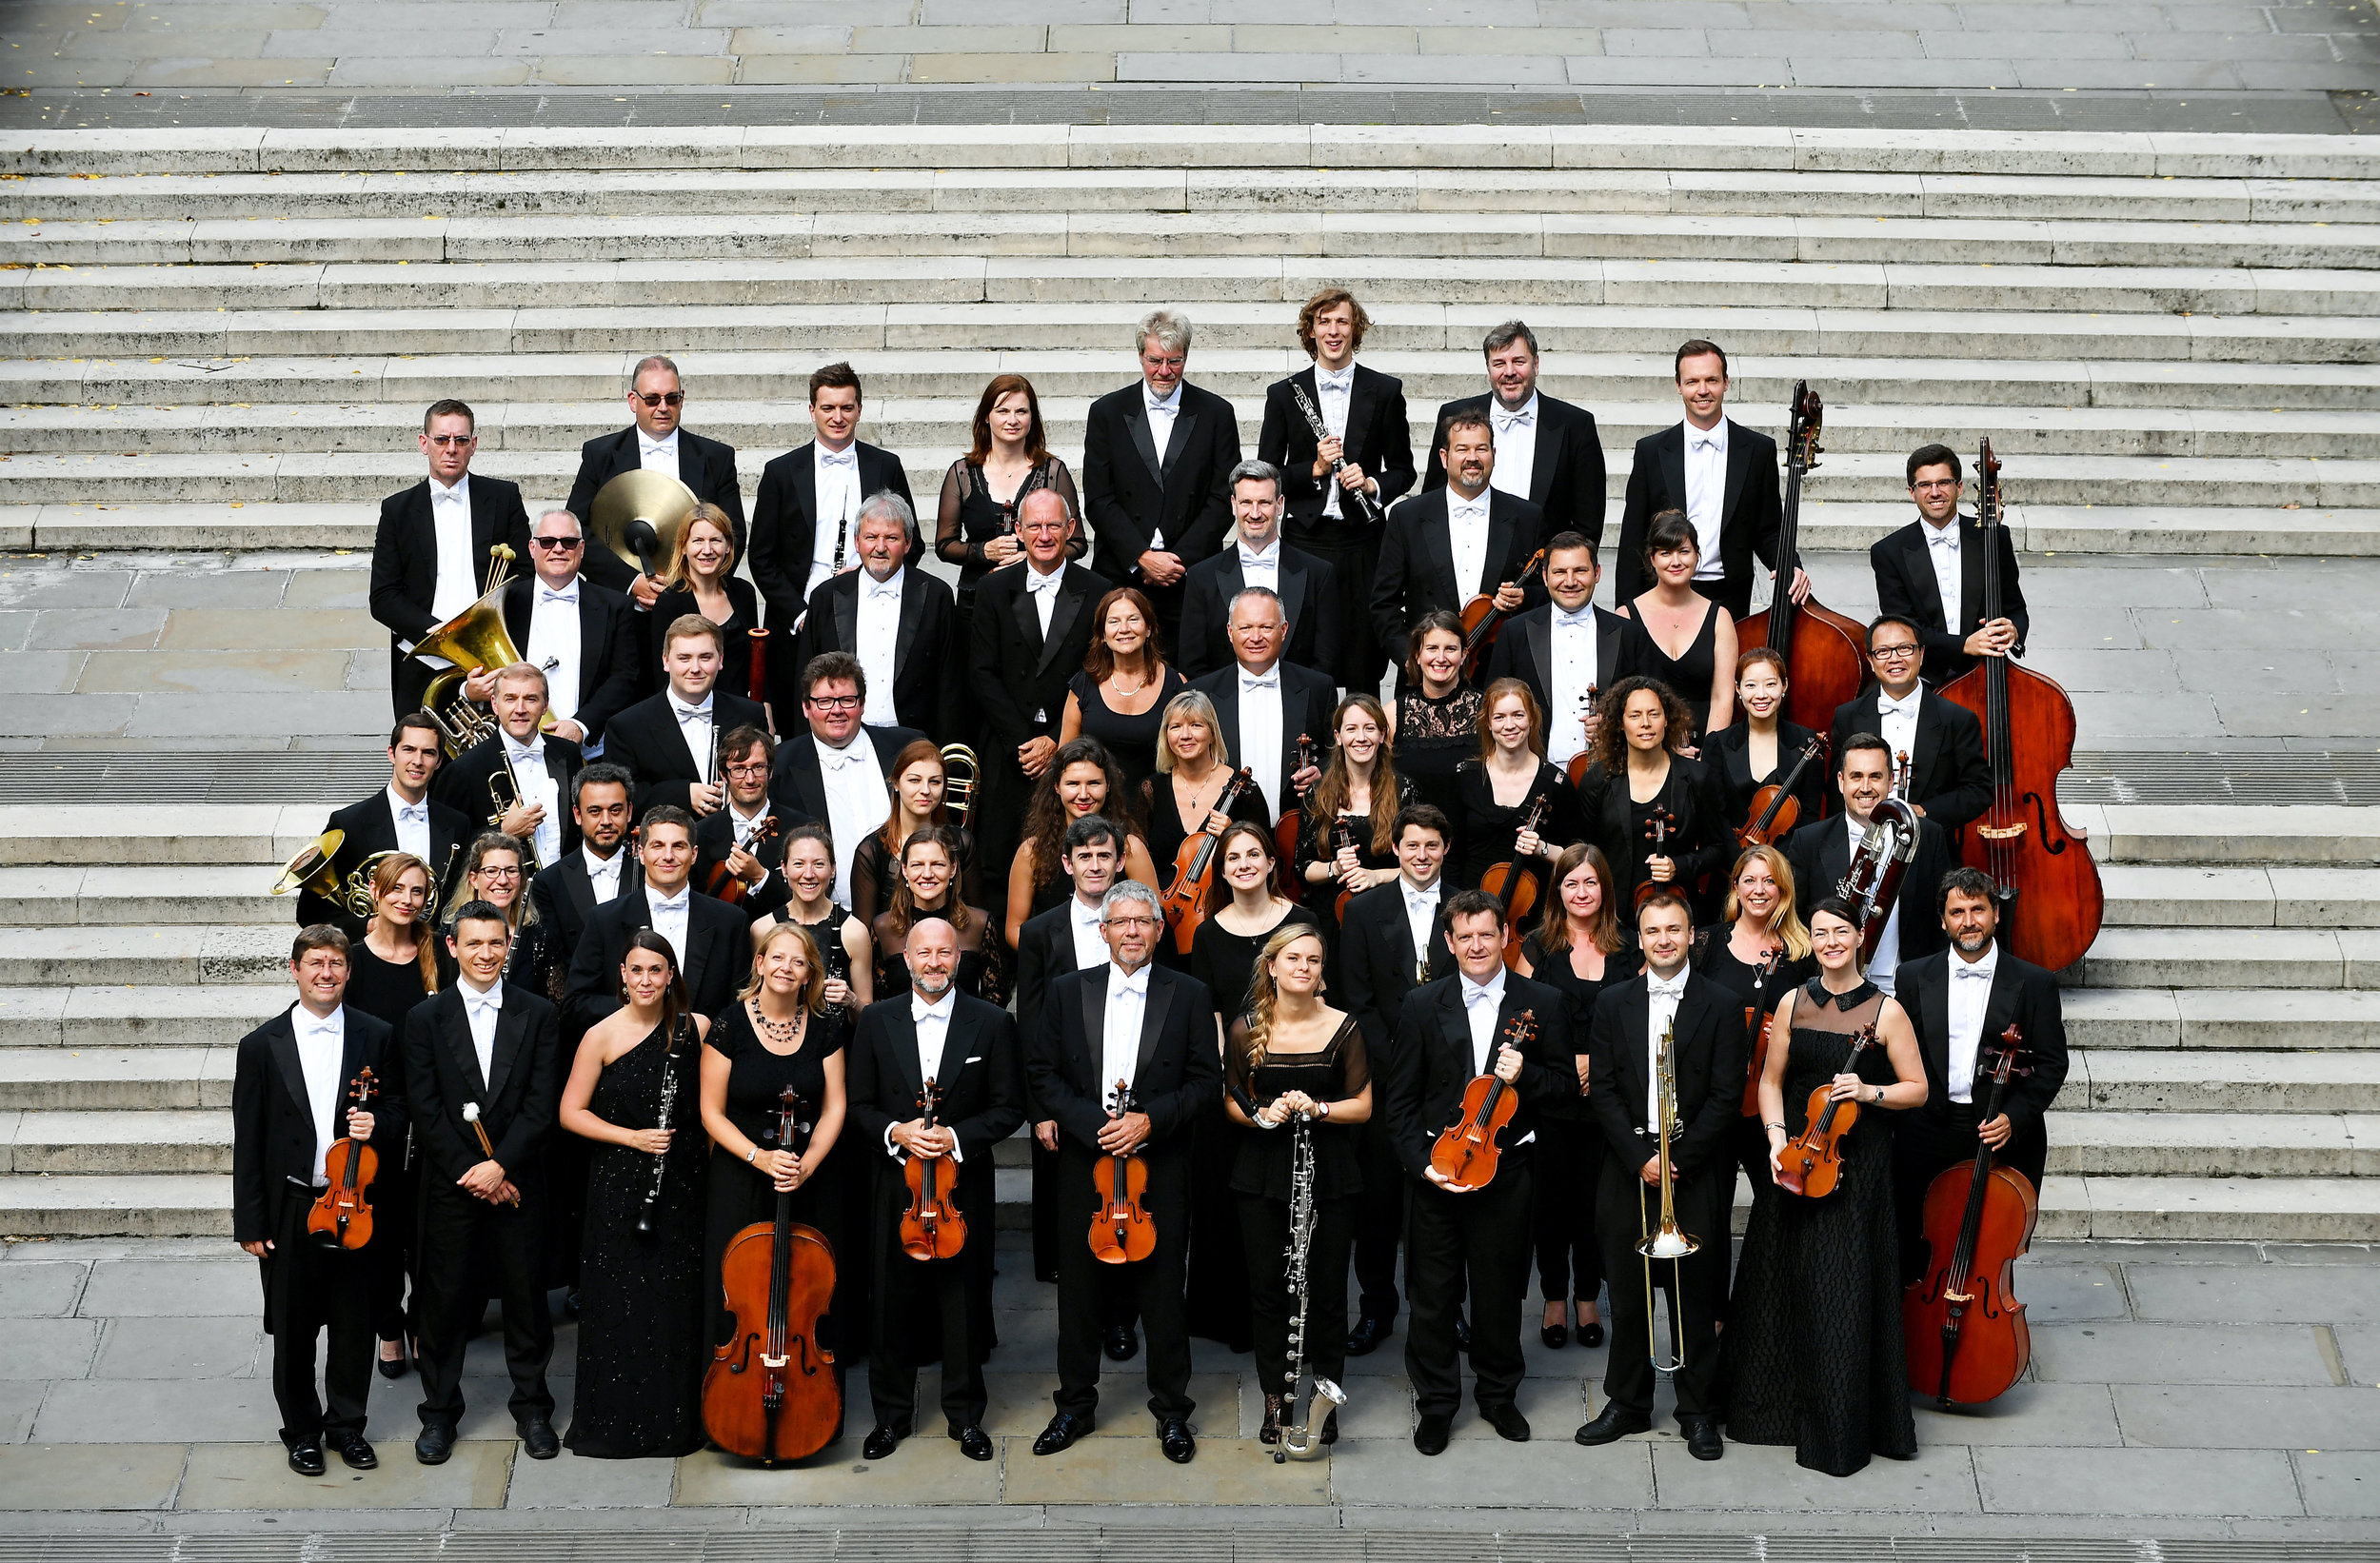 The Full Orchestra